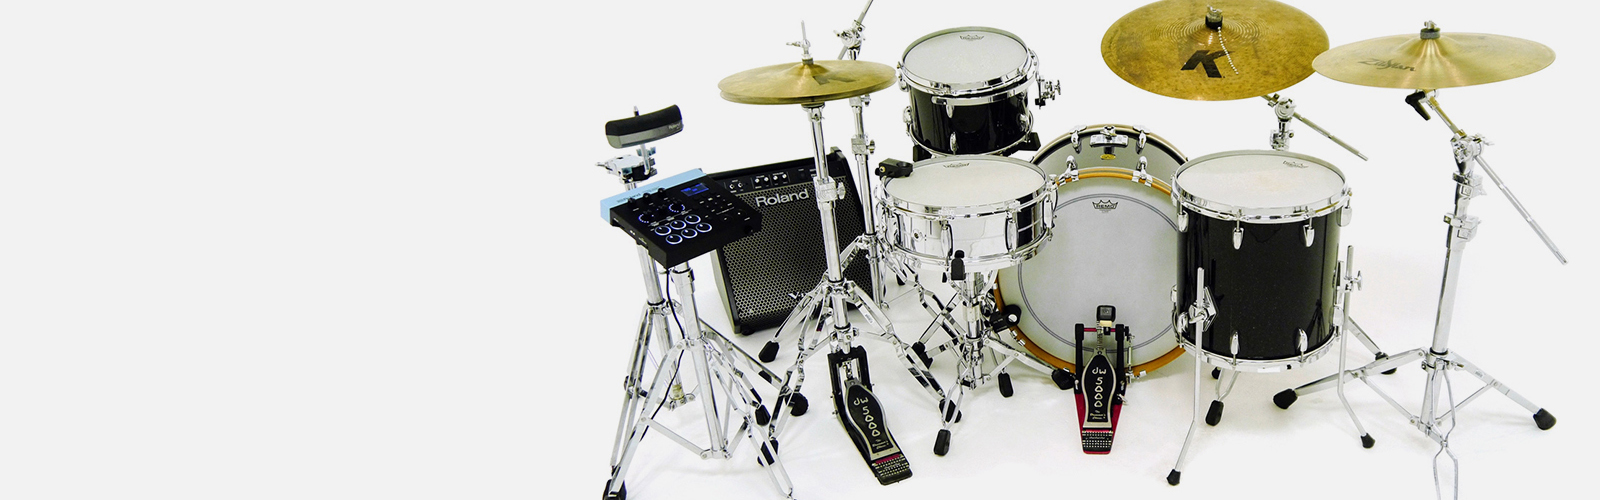 Roland - Drums & Percussion